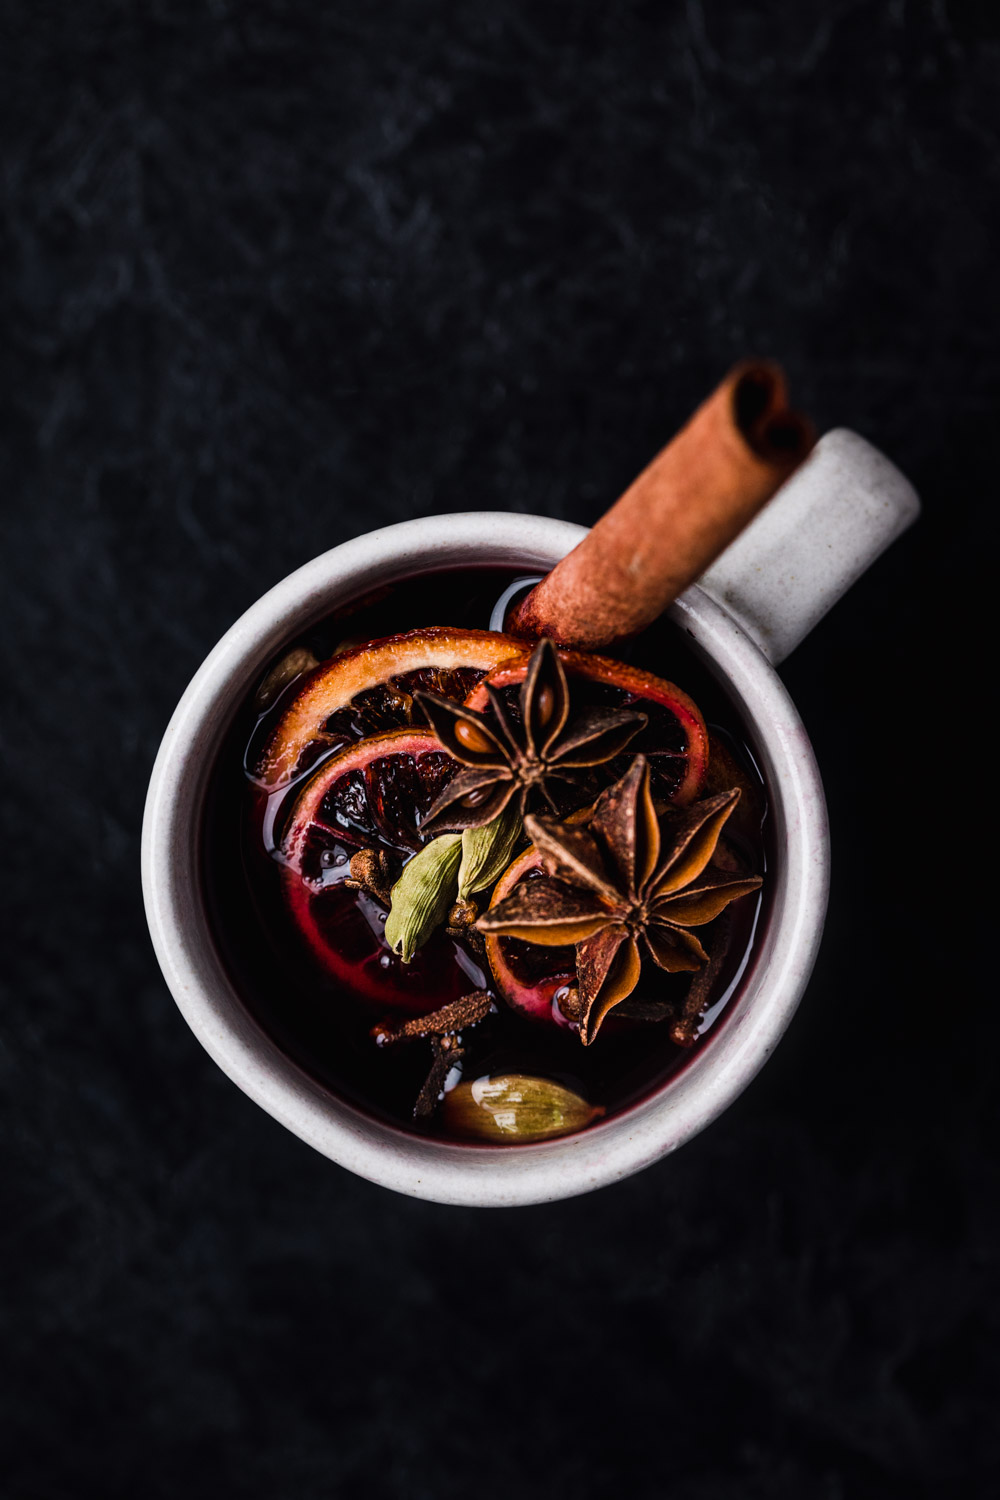 Overhead shot of spiced wine with a few star anise, cardamom pods, blood orange and cloves.